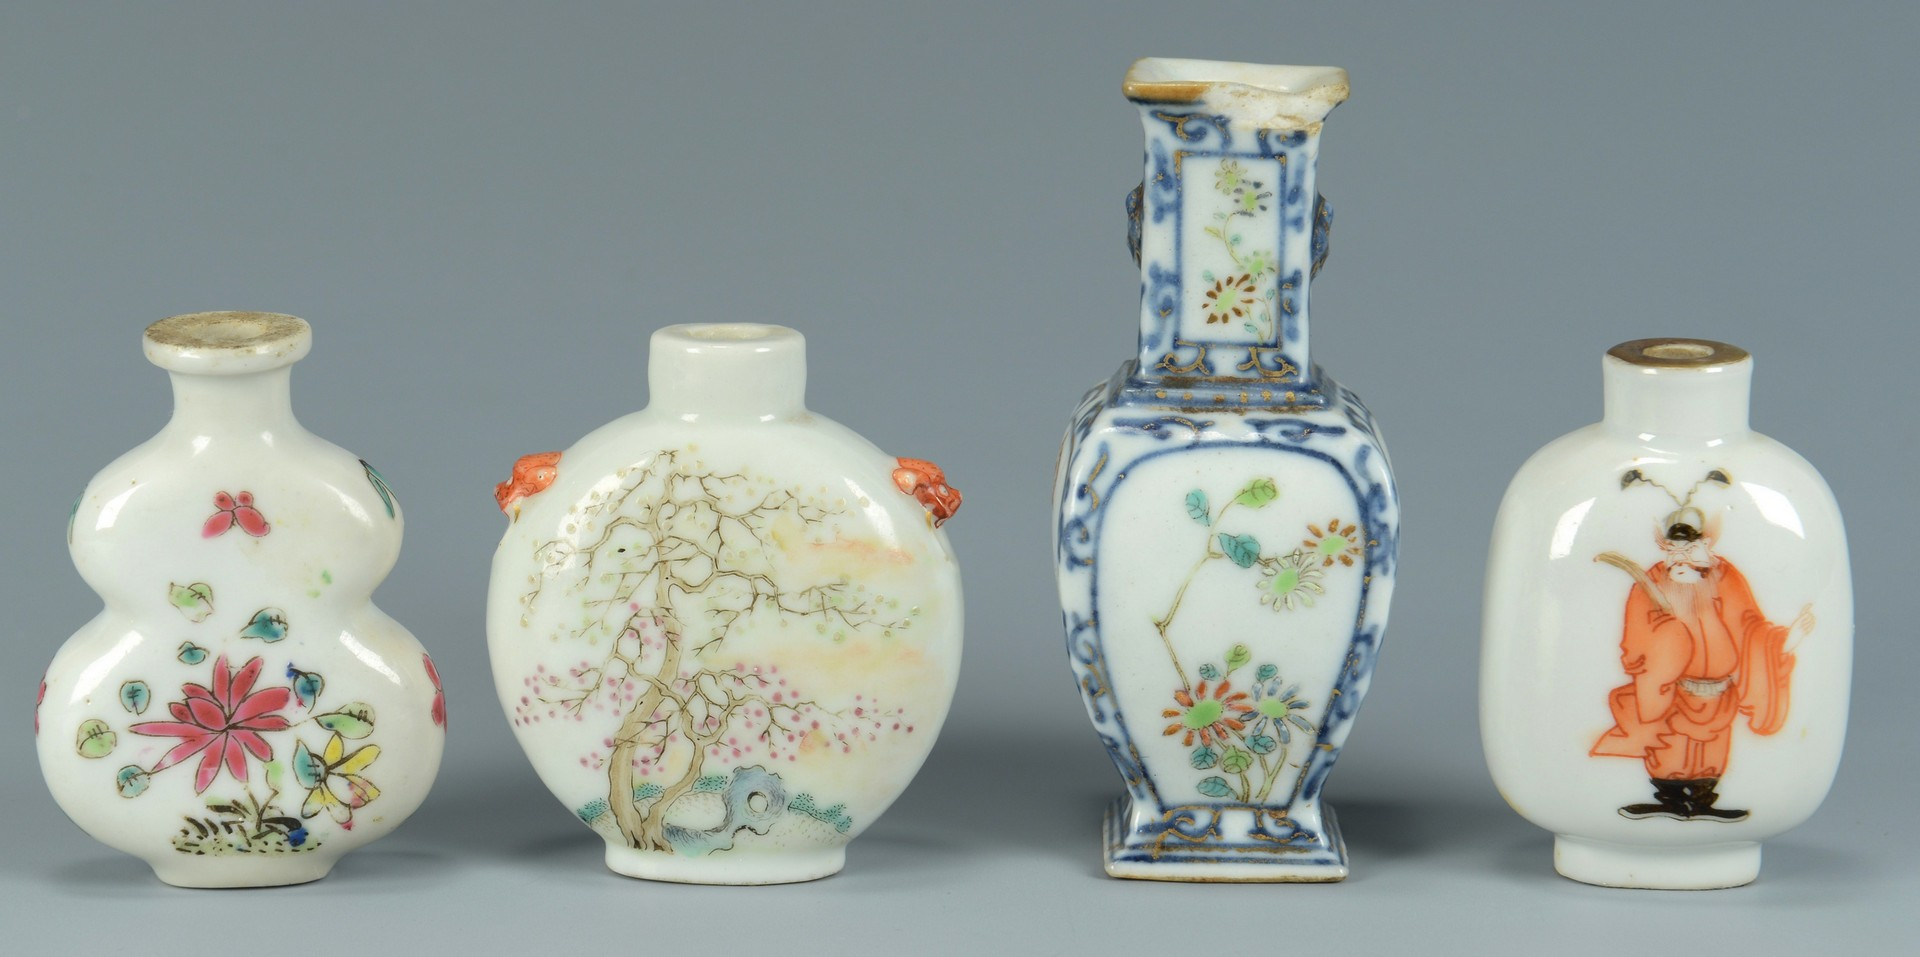 Lot 3383147: 3 Snuff Bottles inc. 1 Tao Kuang, plus Miniature V